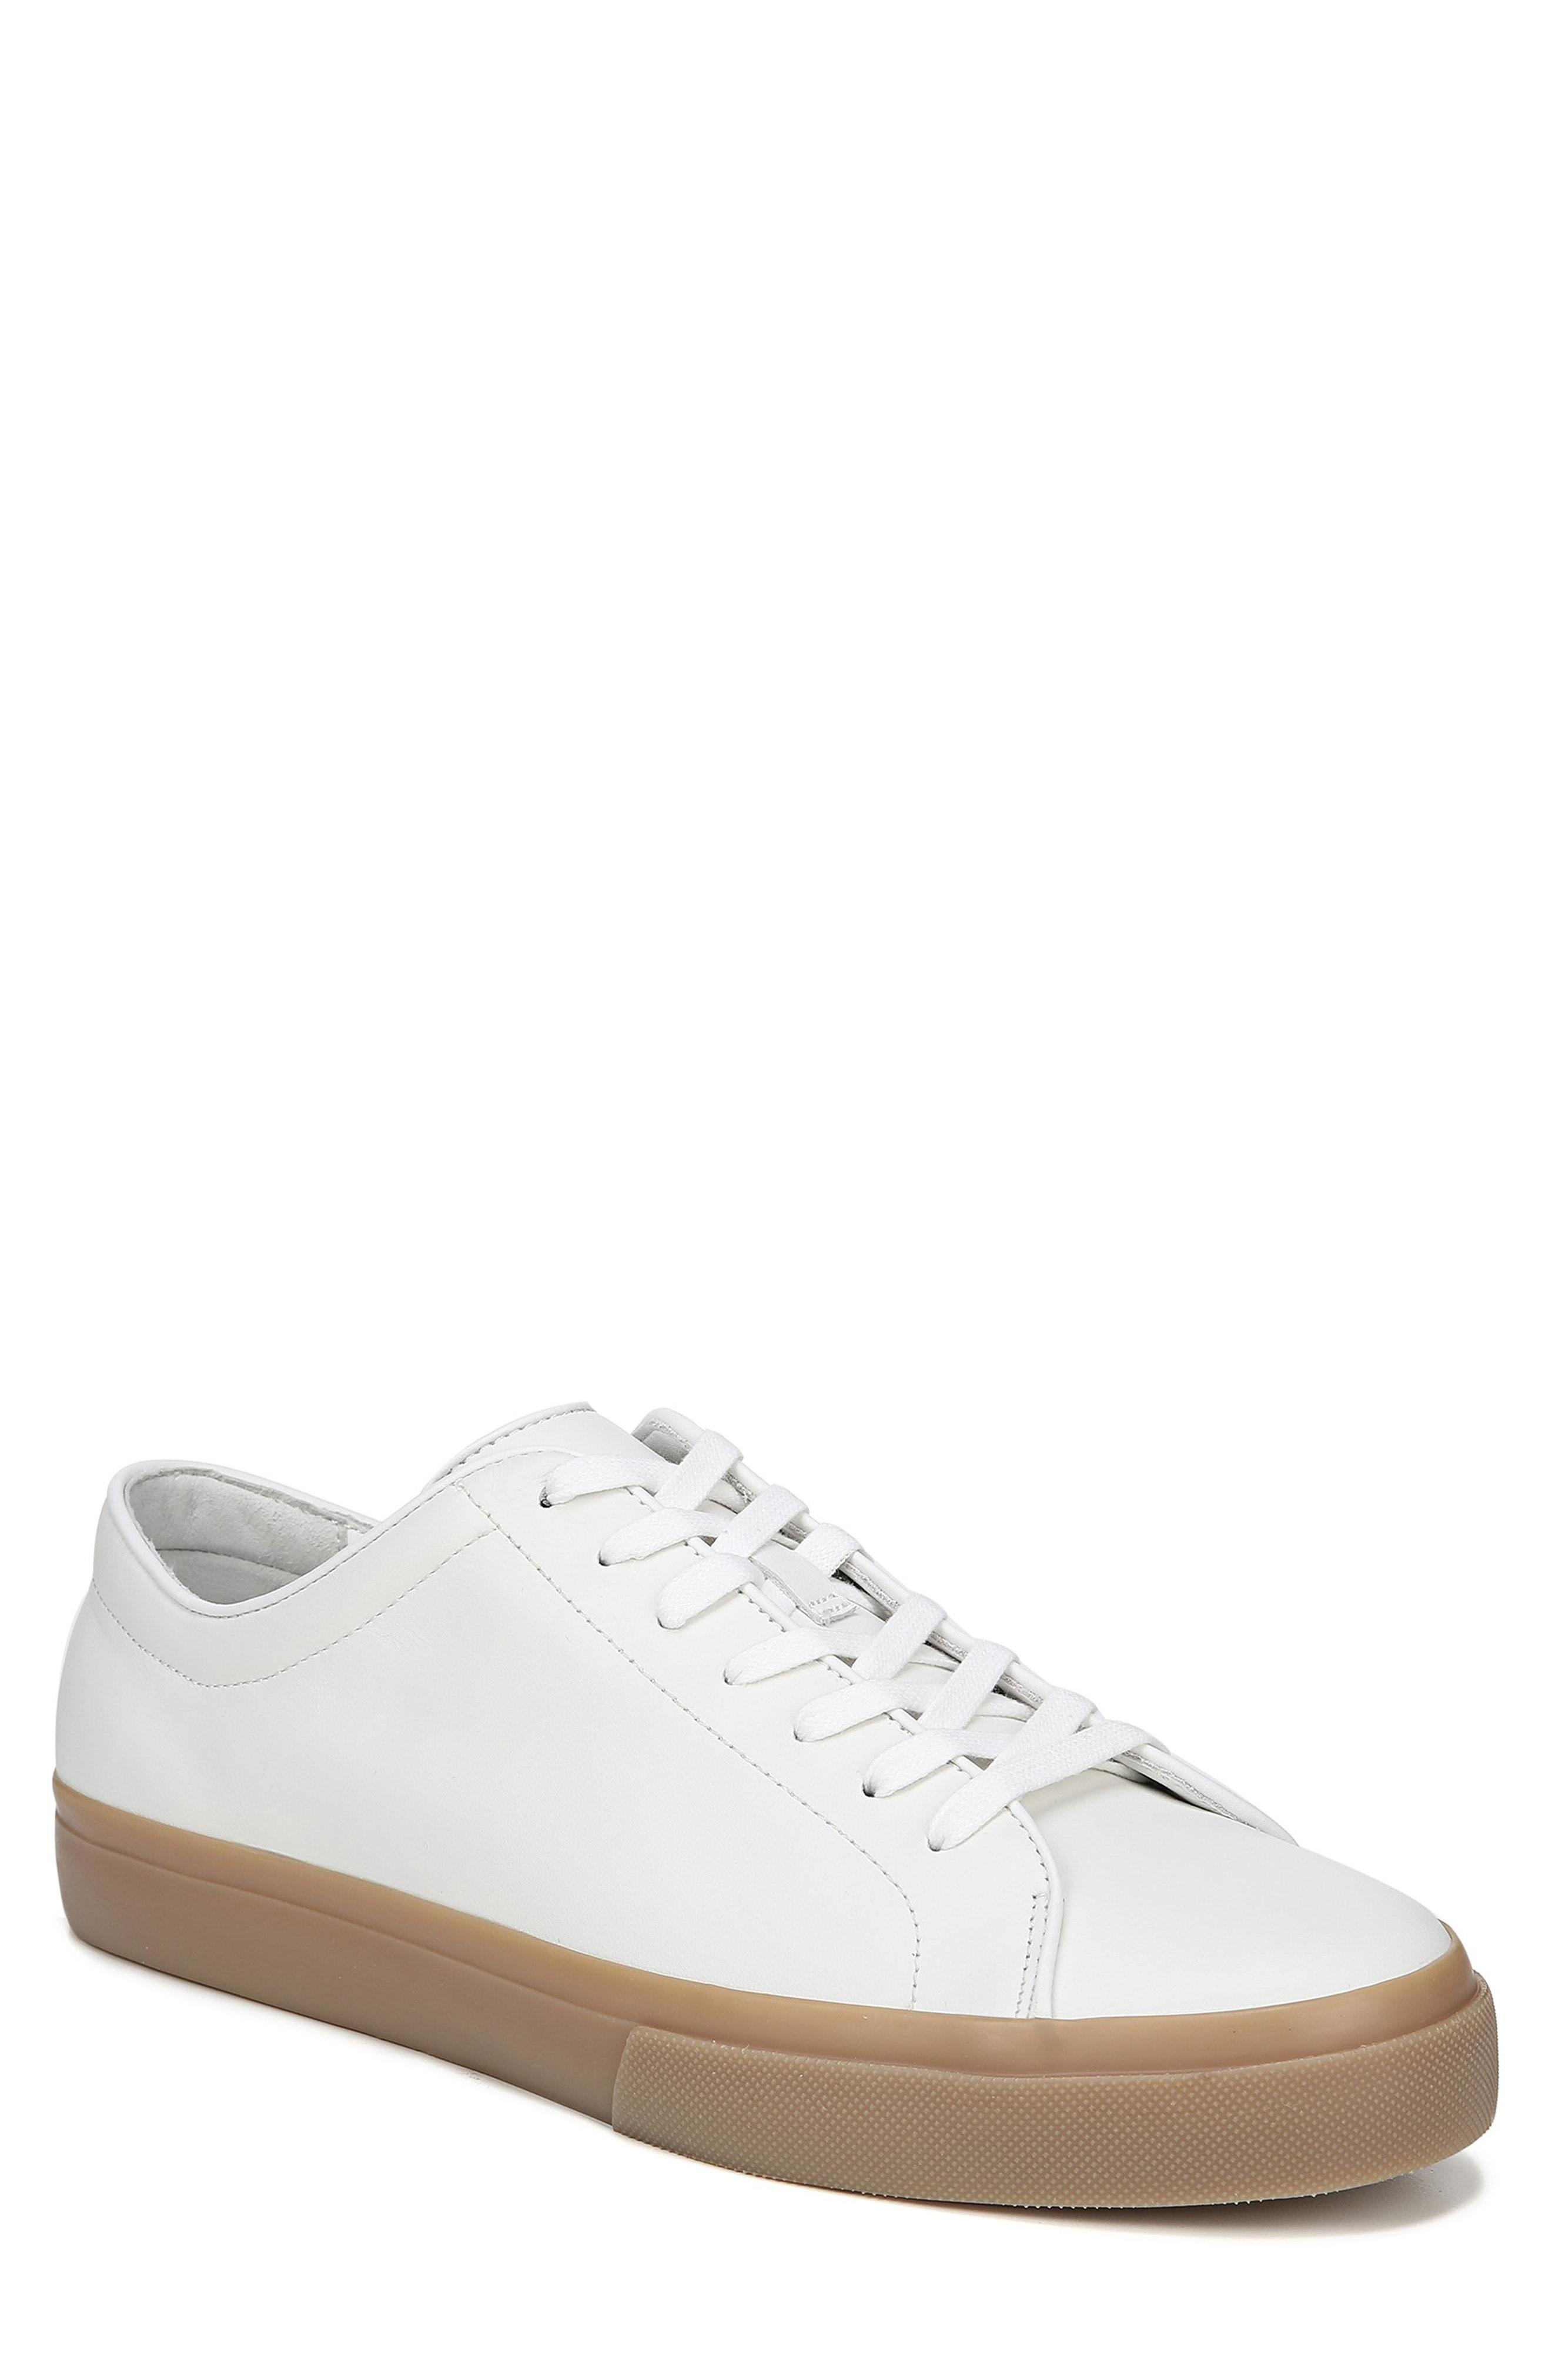 3ff5701a978959 Lyst - Vince Men s Farrell Low-top Leather Sneakers in White for Men